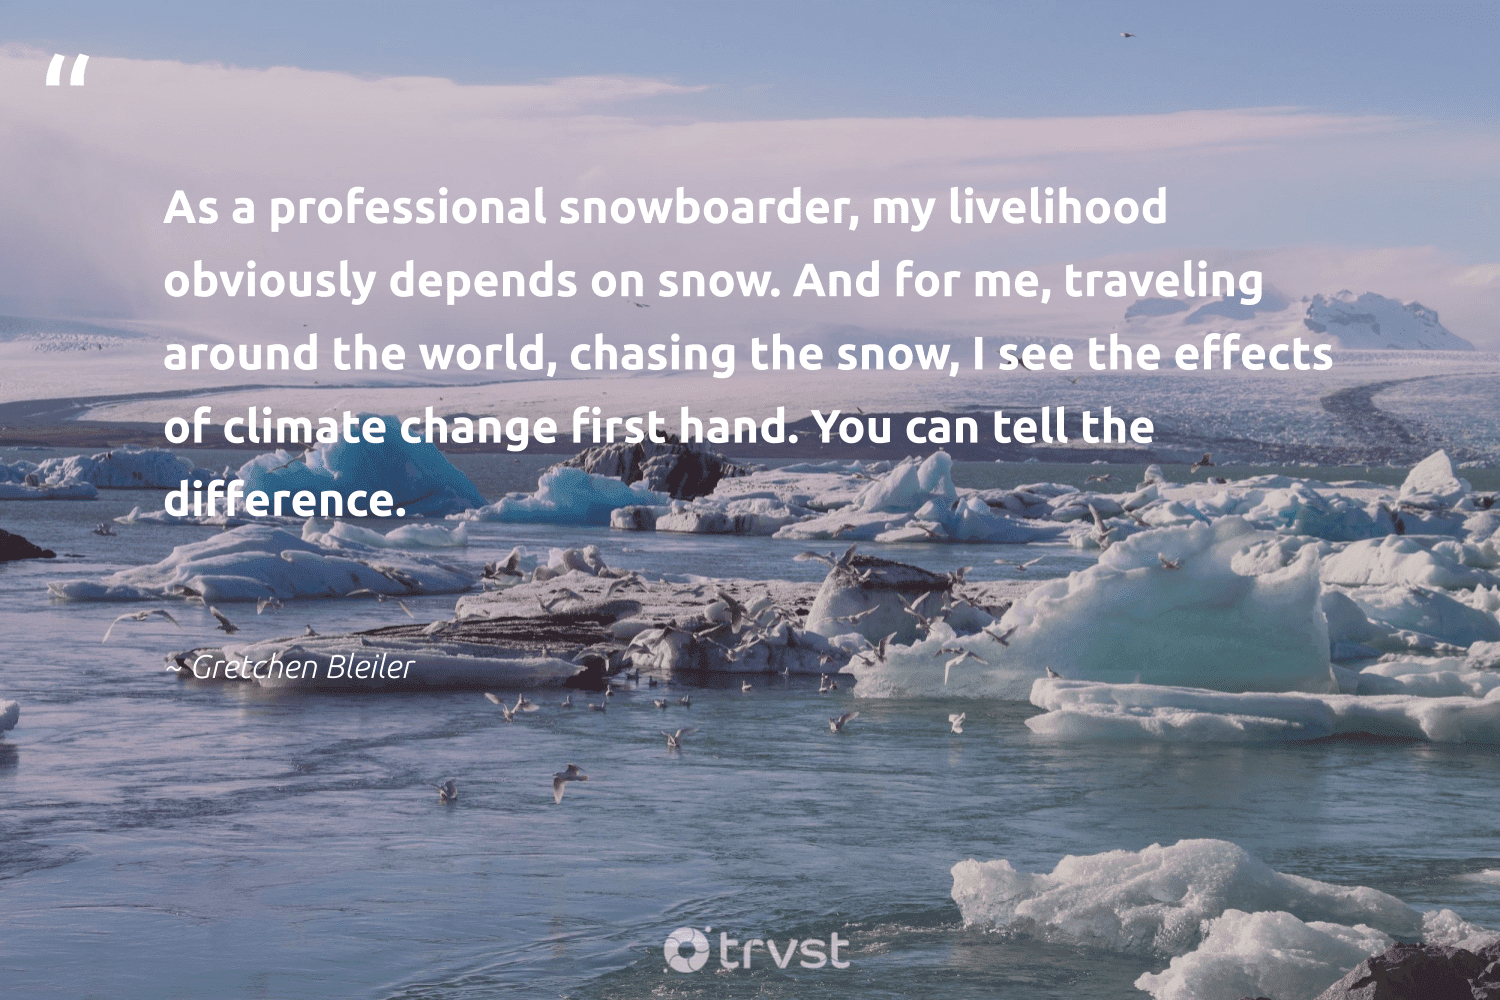 """""""As a professional snowboarder, my livelihood obviously depends on snow. And for me, traveling around the world, chasing the snow, I see the effects of climate change first hand. You can tell the difference.""""  - Gretchen Bleiler #trvst #quotes #climatechange #snow #climate #globalwarming #extremeweather #climatefight #sustainablefutures #gogreen #climatechangeisreal #flooding"""